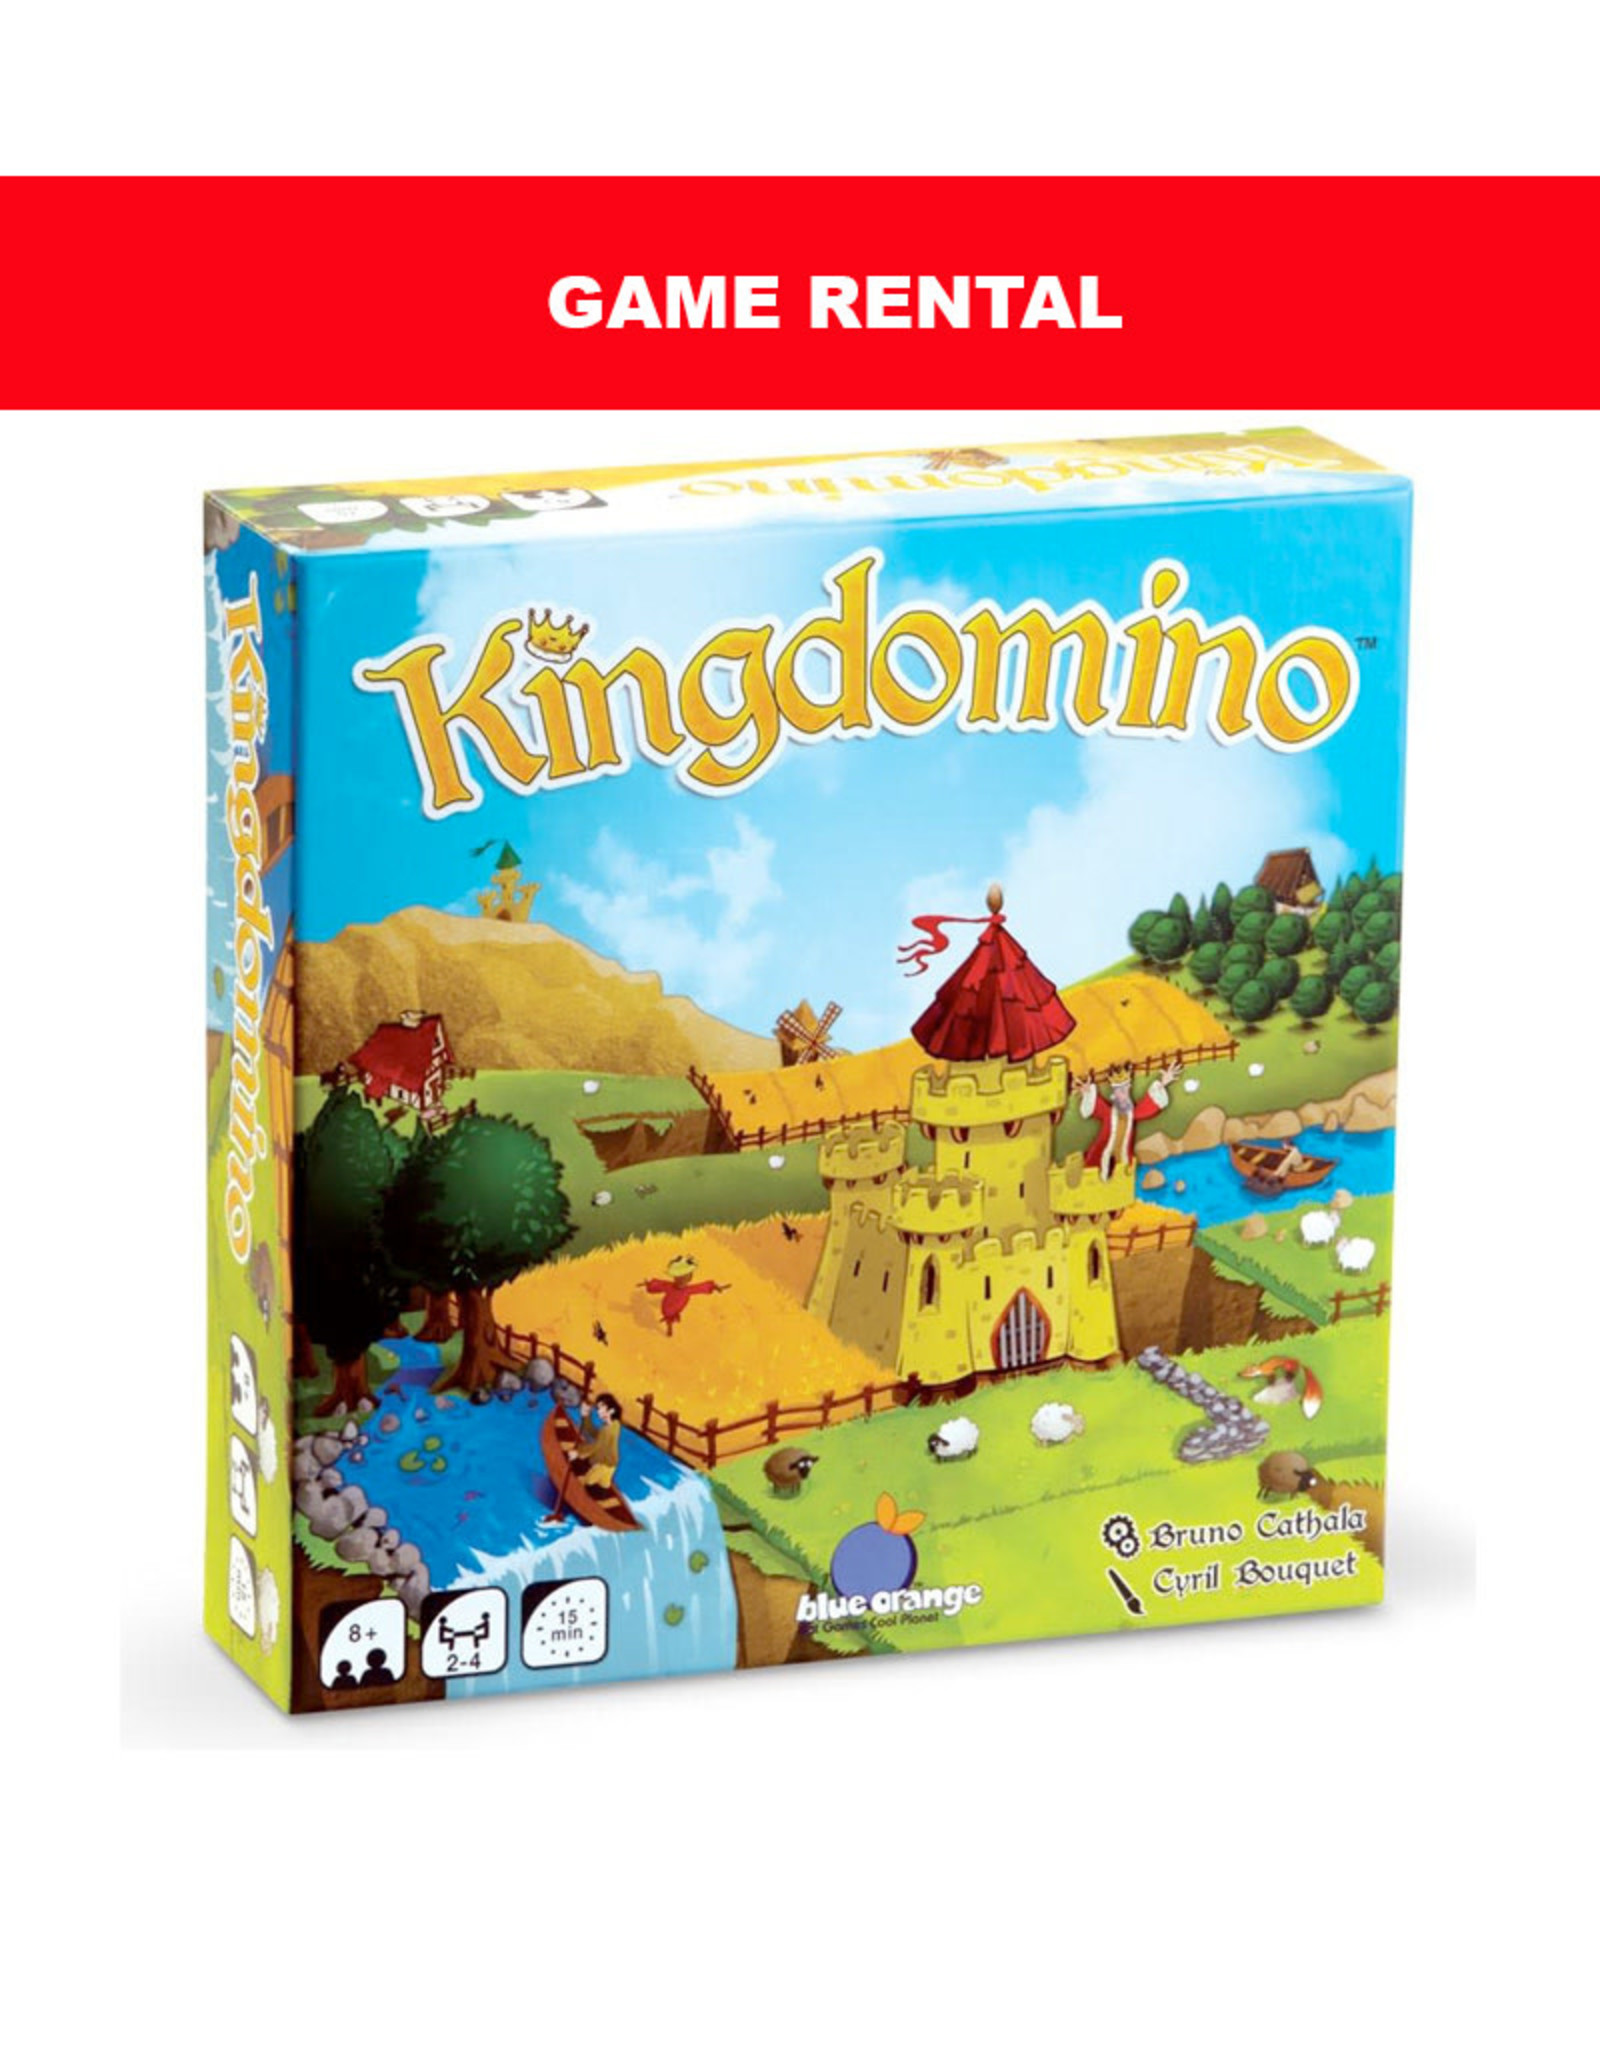 Blue Orange Games (RENT) KINGDOMINO for a Day. Love It! Buy It!